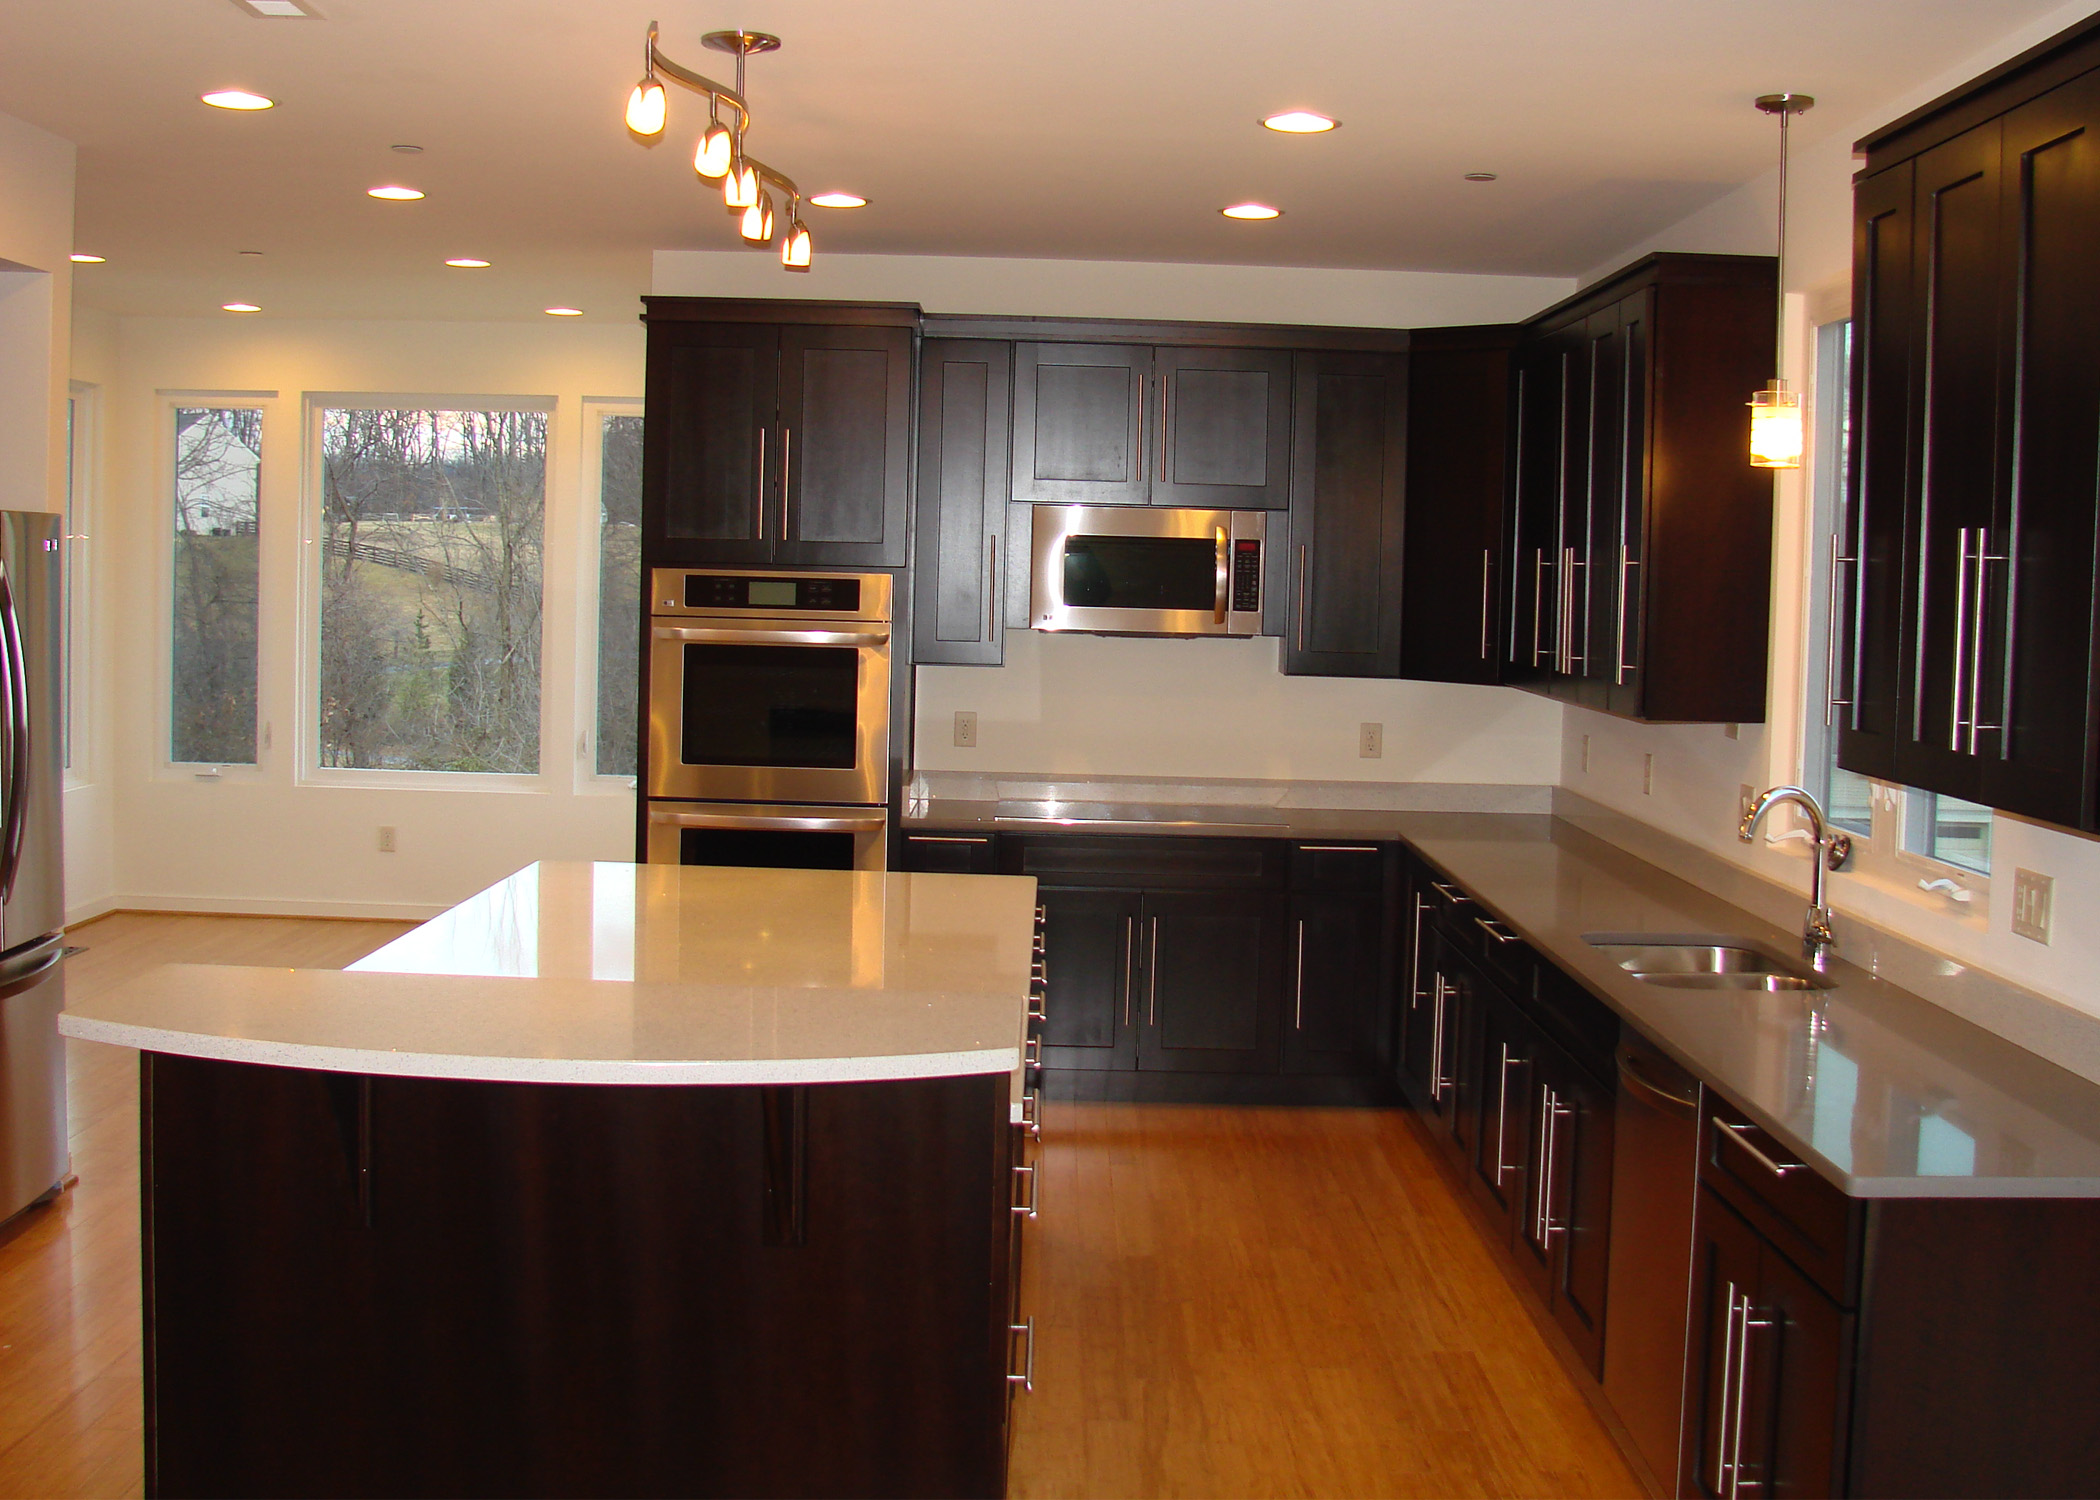 Mollot Kitchen AWE-13 - Copy.jpg